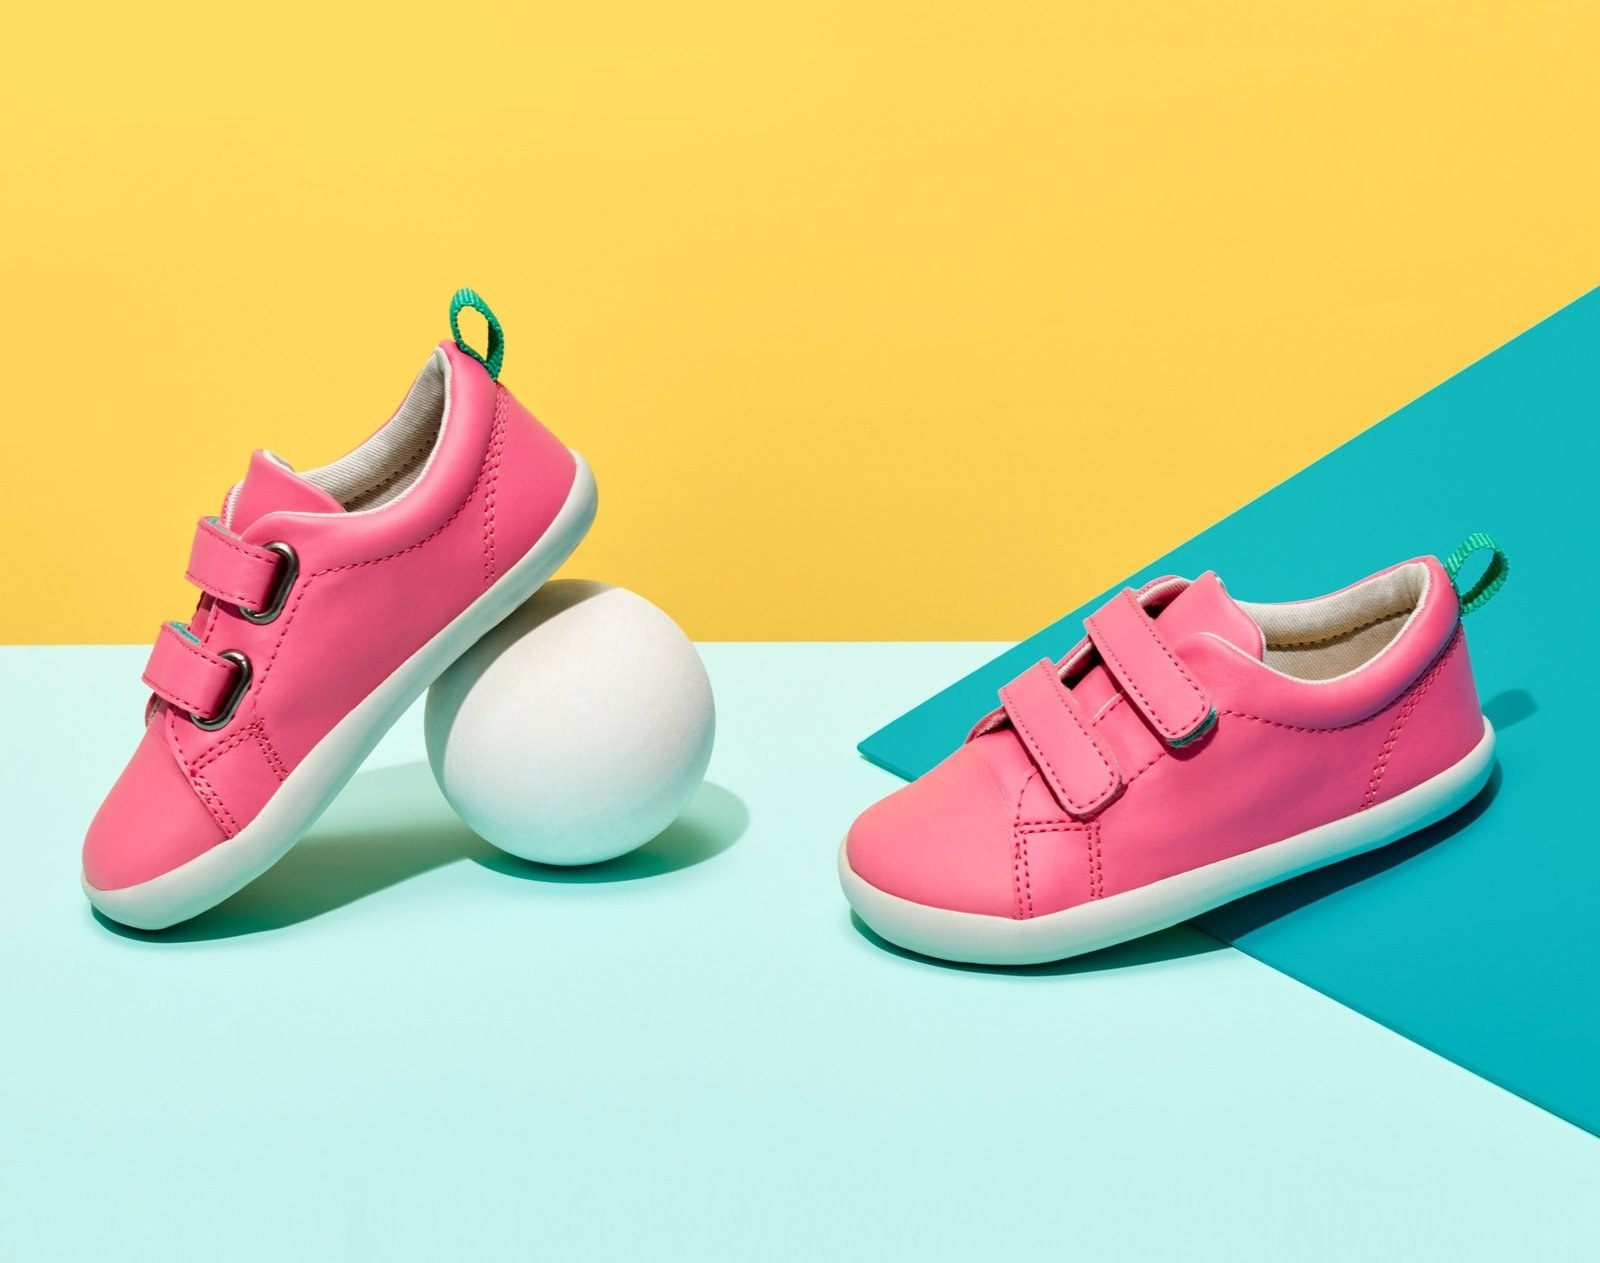 Pink sneakers with velcro straps and white treads